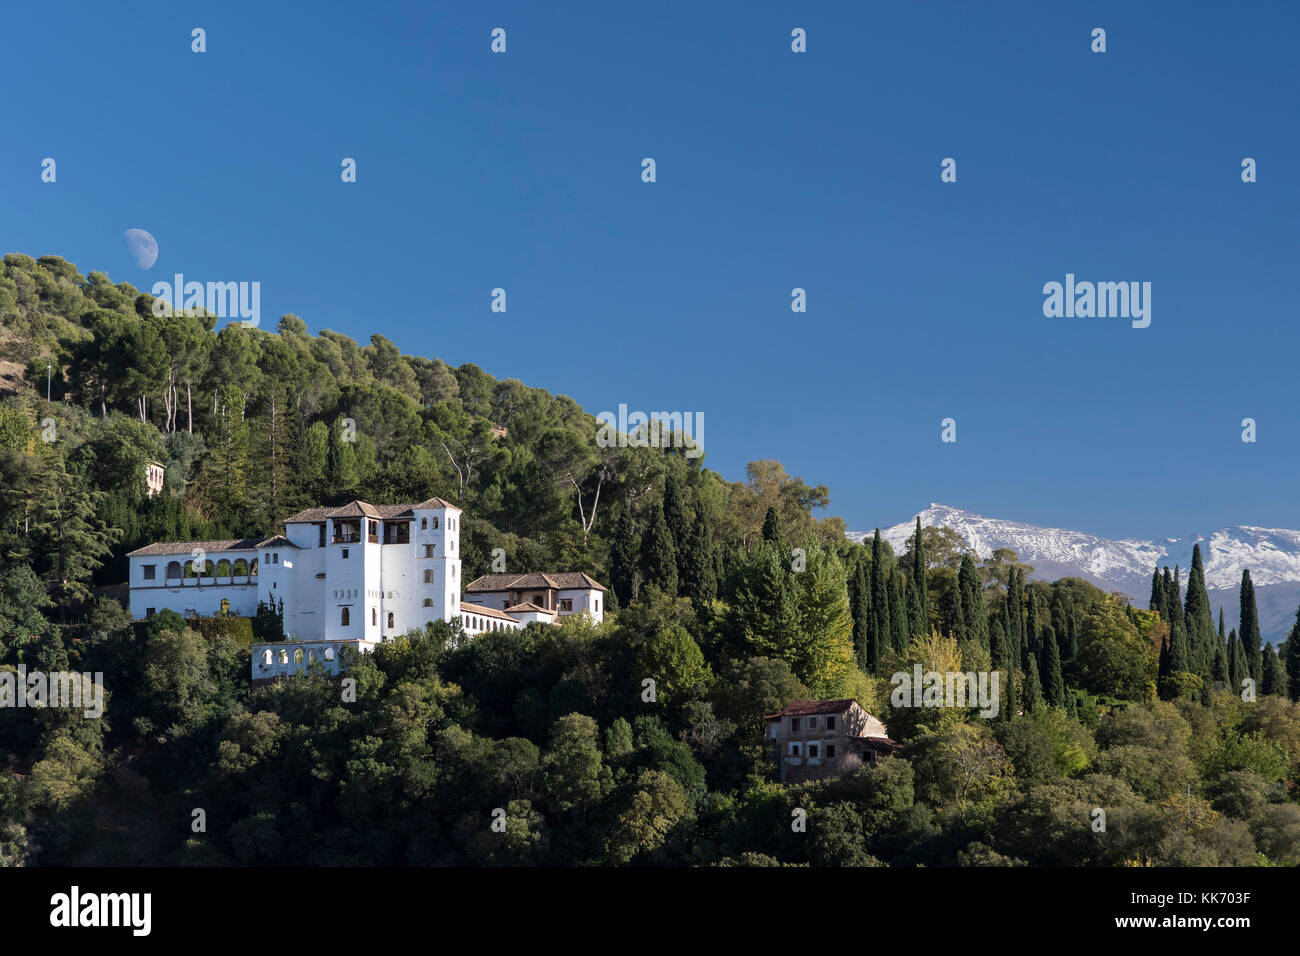 Granada, Spain. October, 2017. The Generalife seen from viewpoint of Albaicin - Stock Image